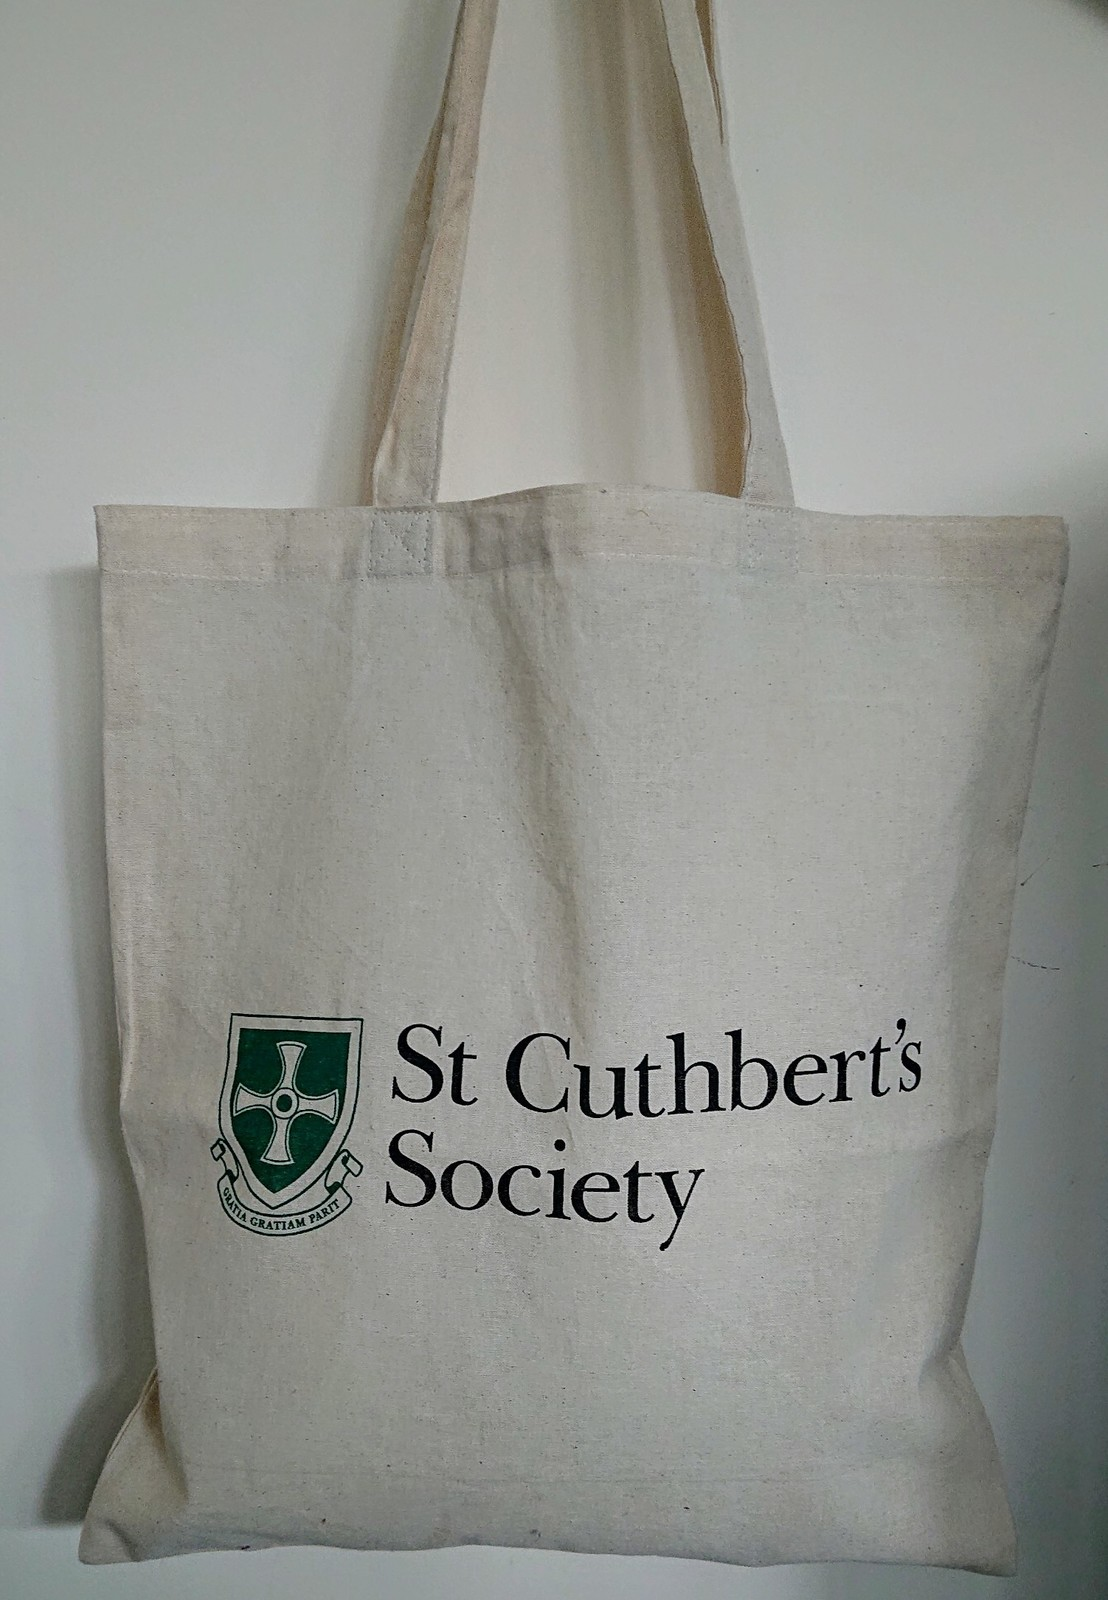 Home of the Cuthberts Tote Bag